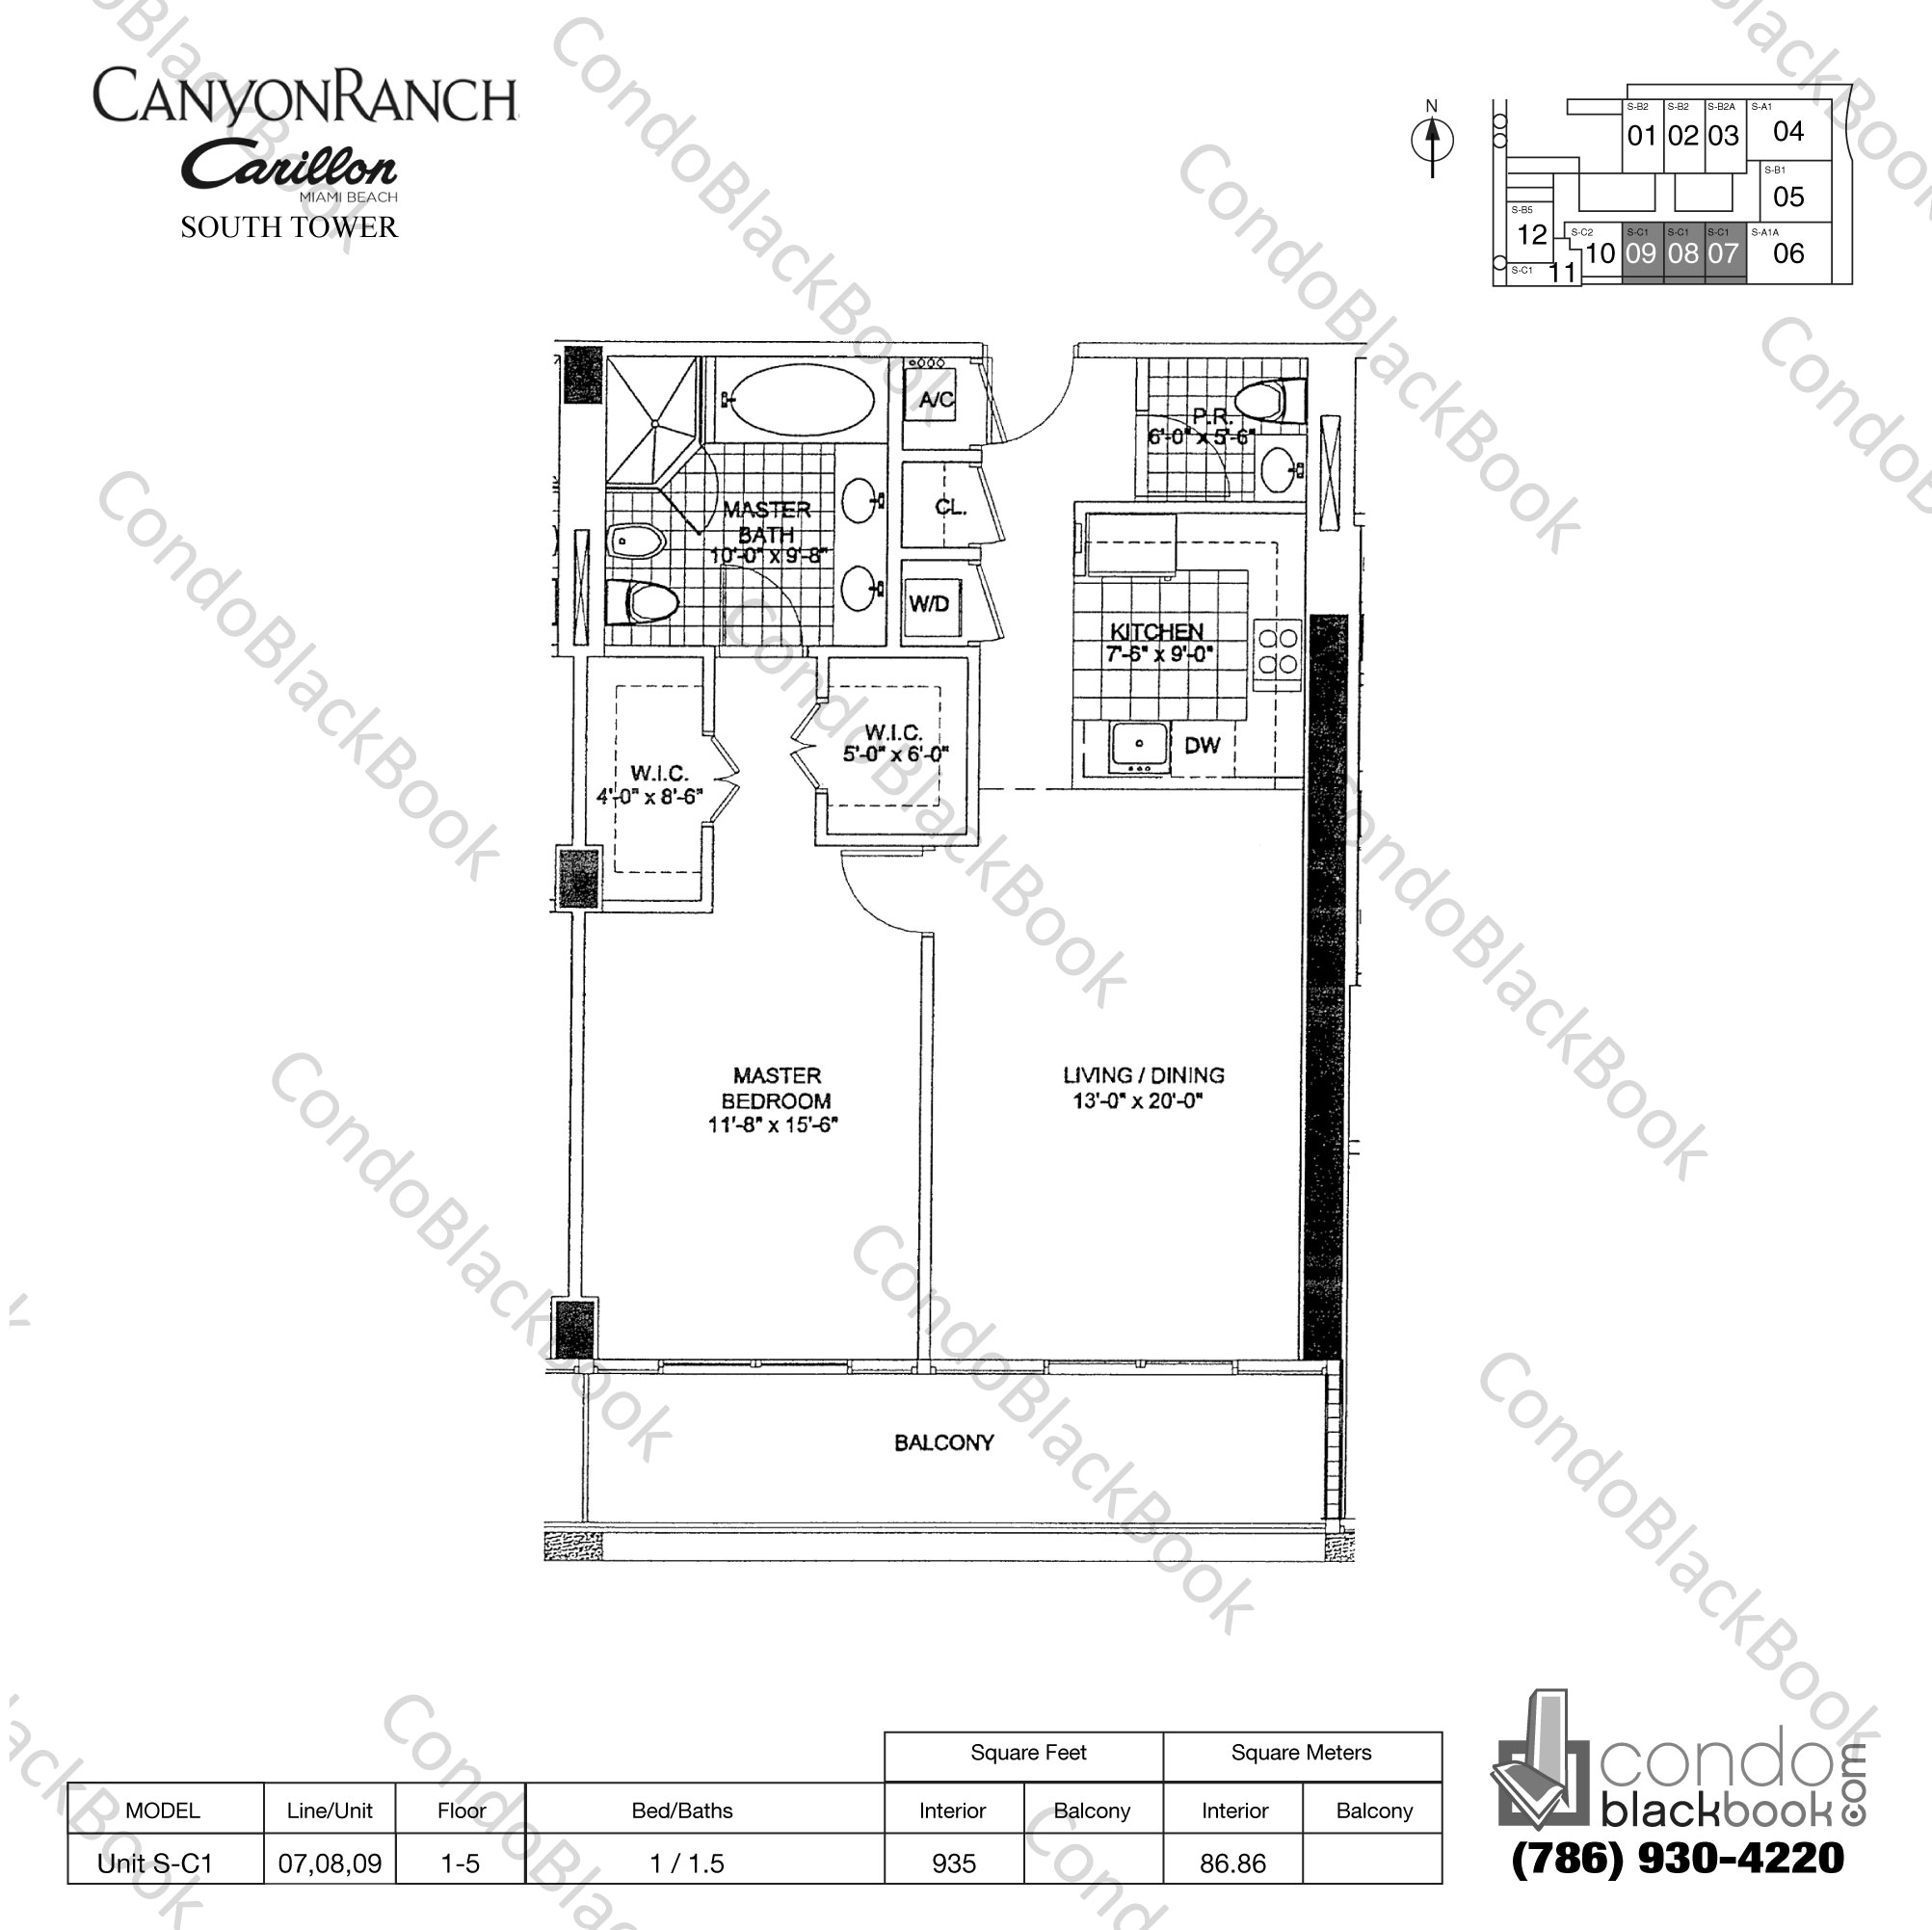 Floor plan for Carillon Condo South Tower North Beach Miami Beach, model Unit S-C1, line 07,08,09, 1 / 1.5 bedrooms, 935 sq ft